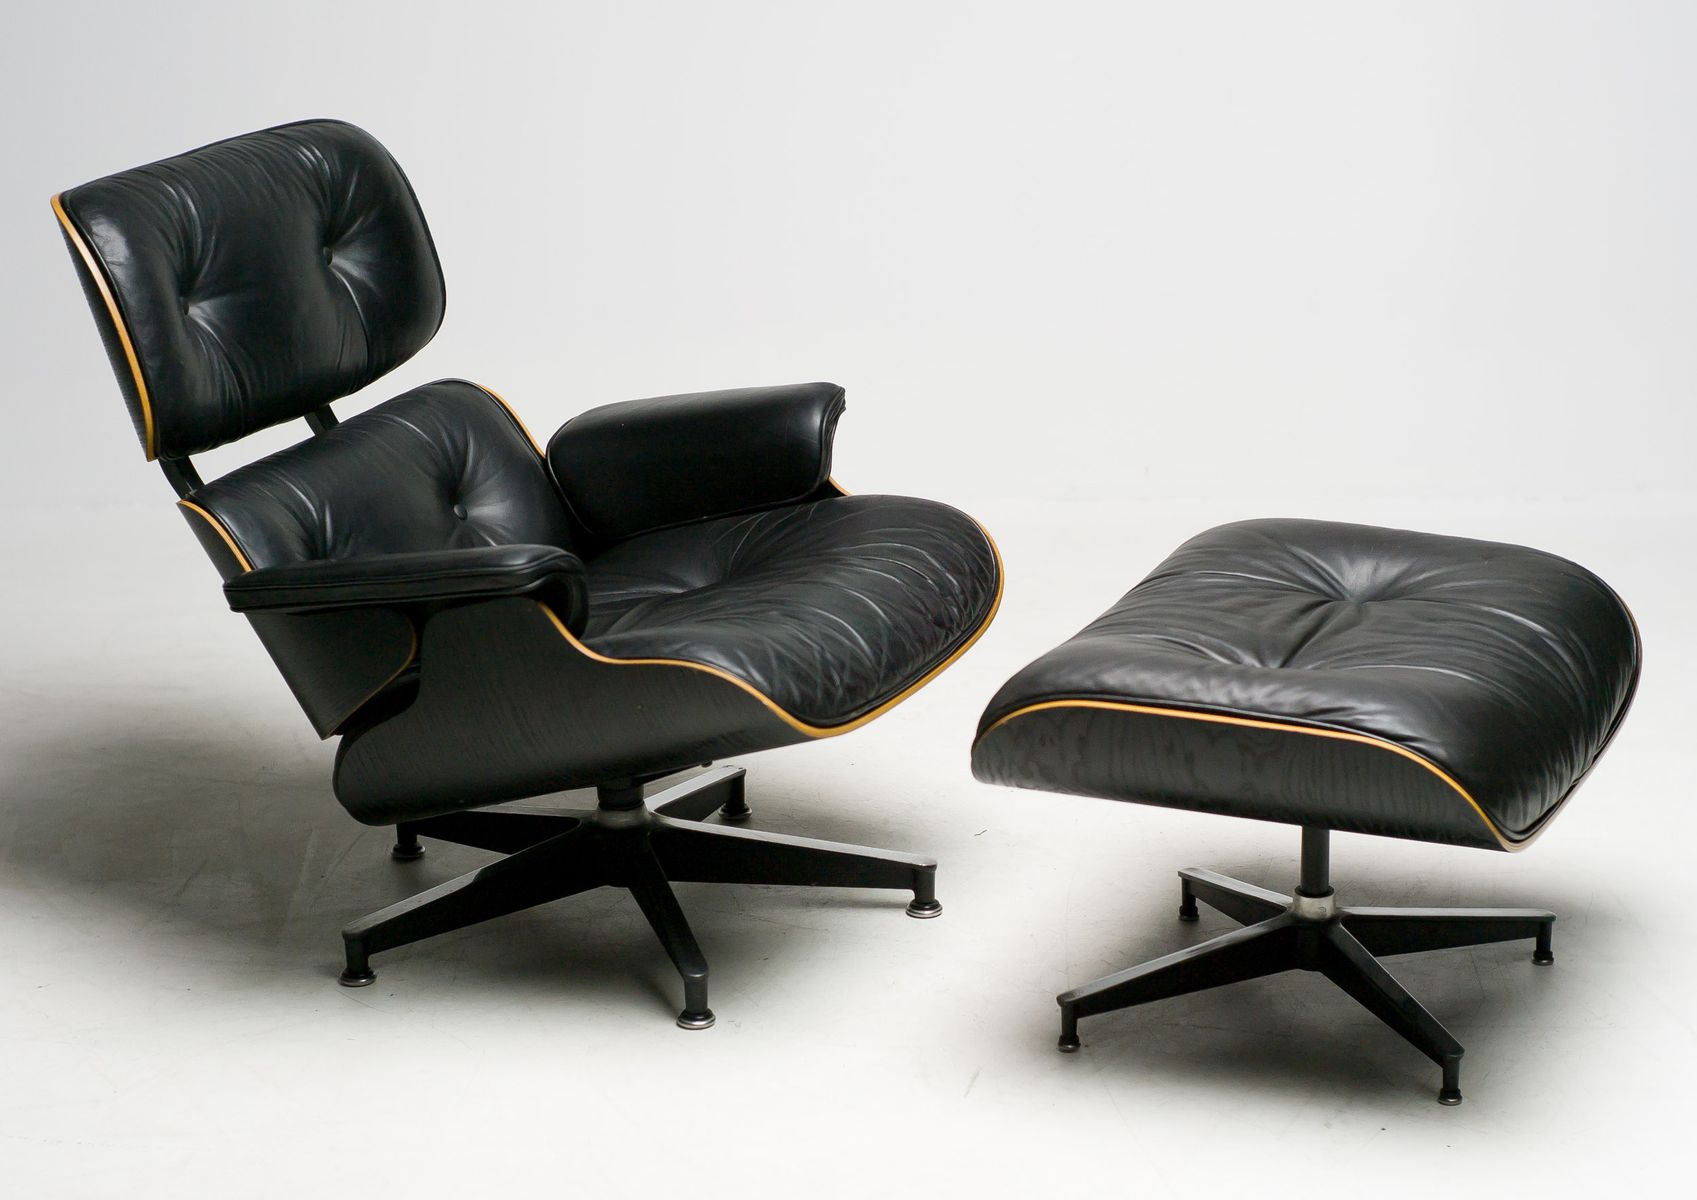 american black 670 swivel chair and 671 ottoman by charles. Black Bedroom Furniture Sets. Home Design Ideas